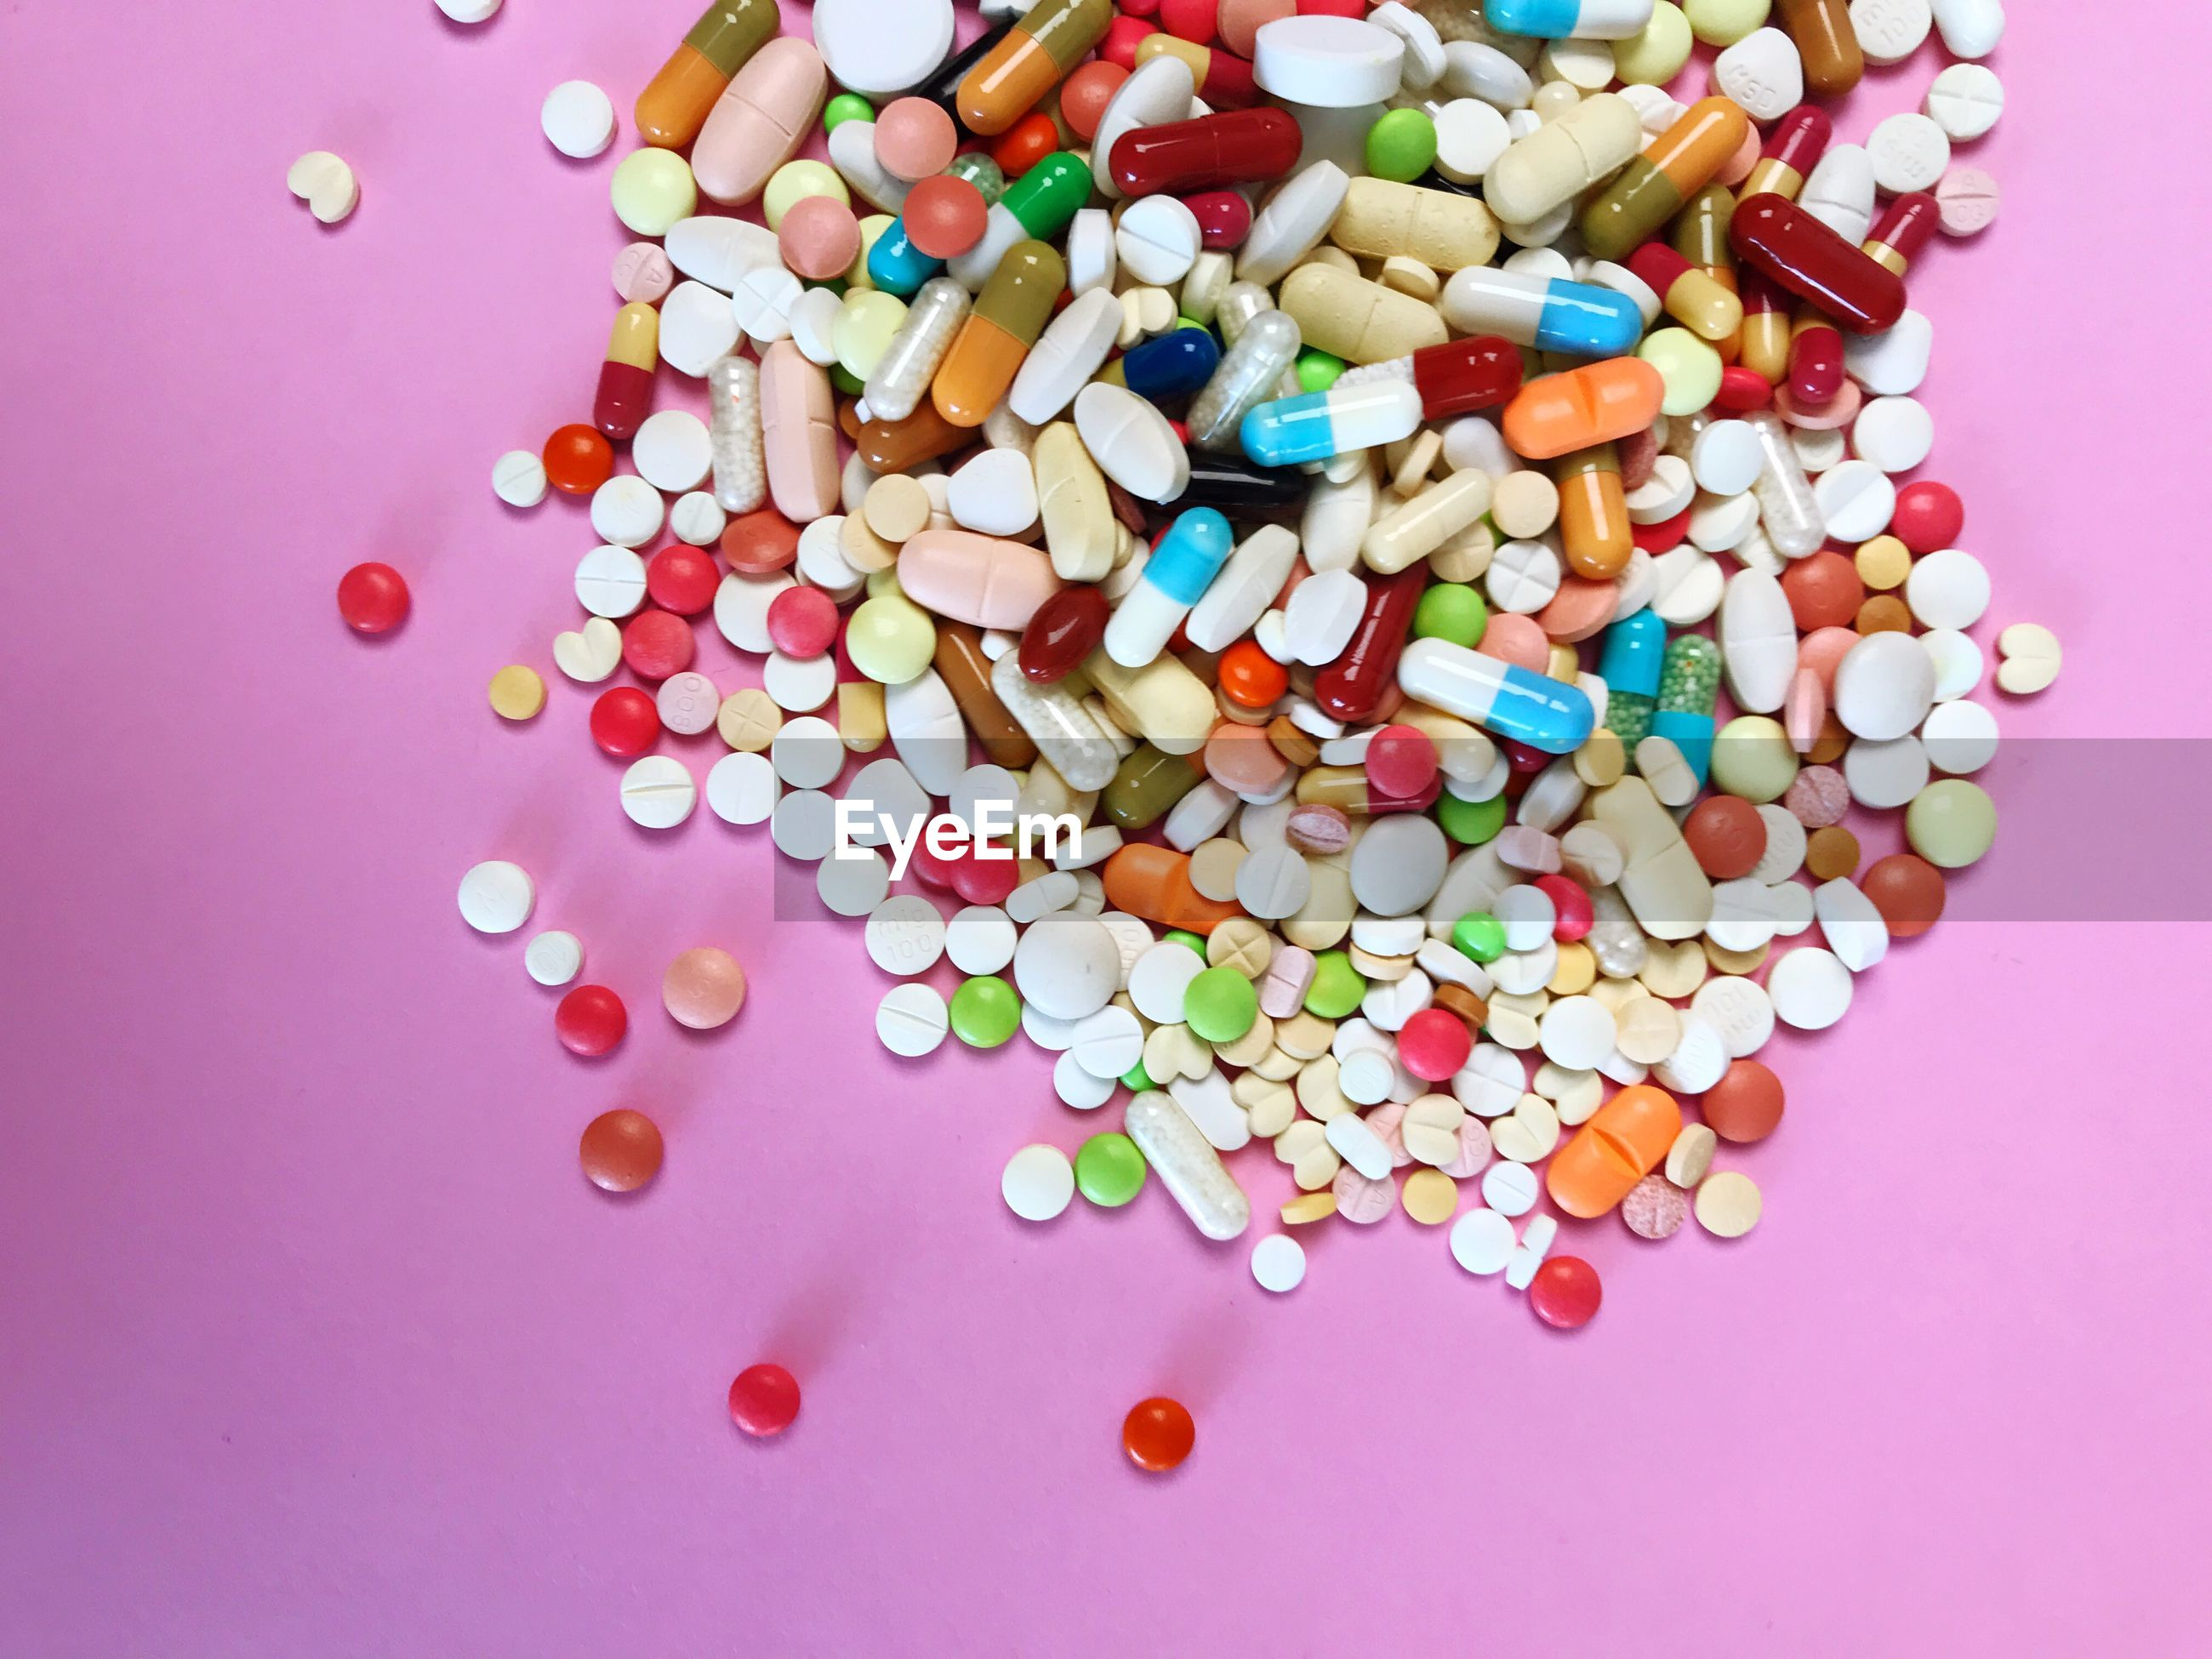 Directly above shot pills on pink background